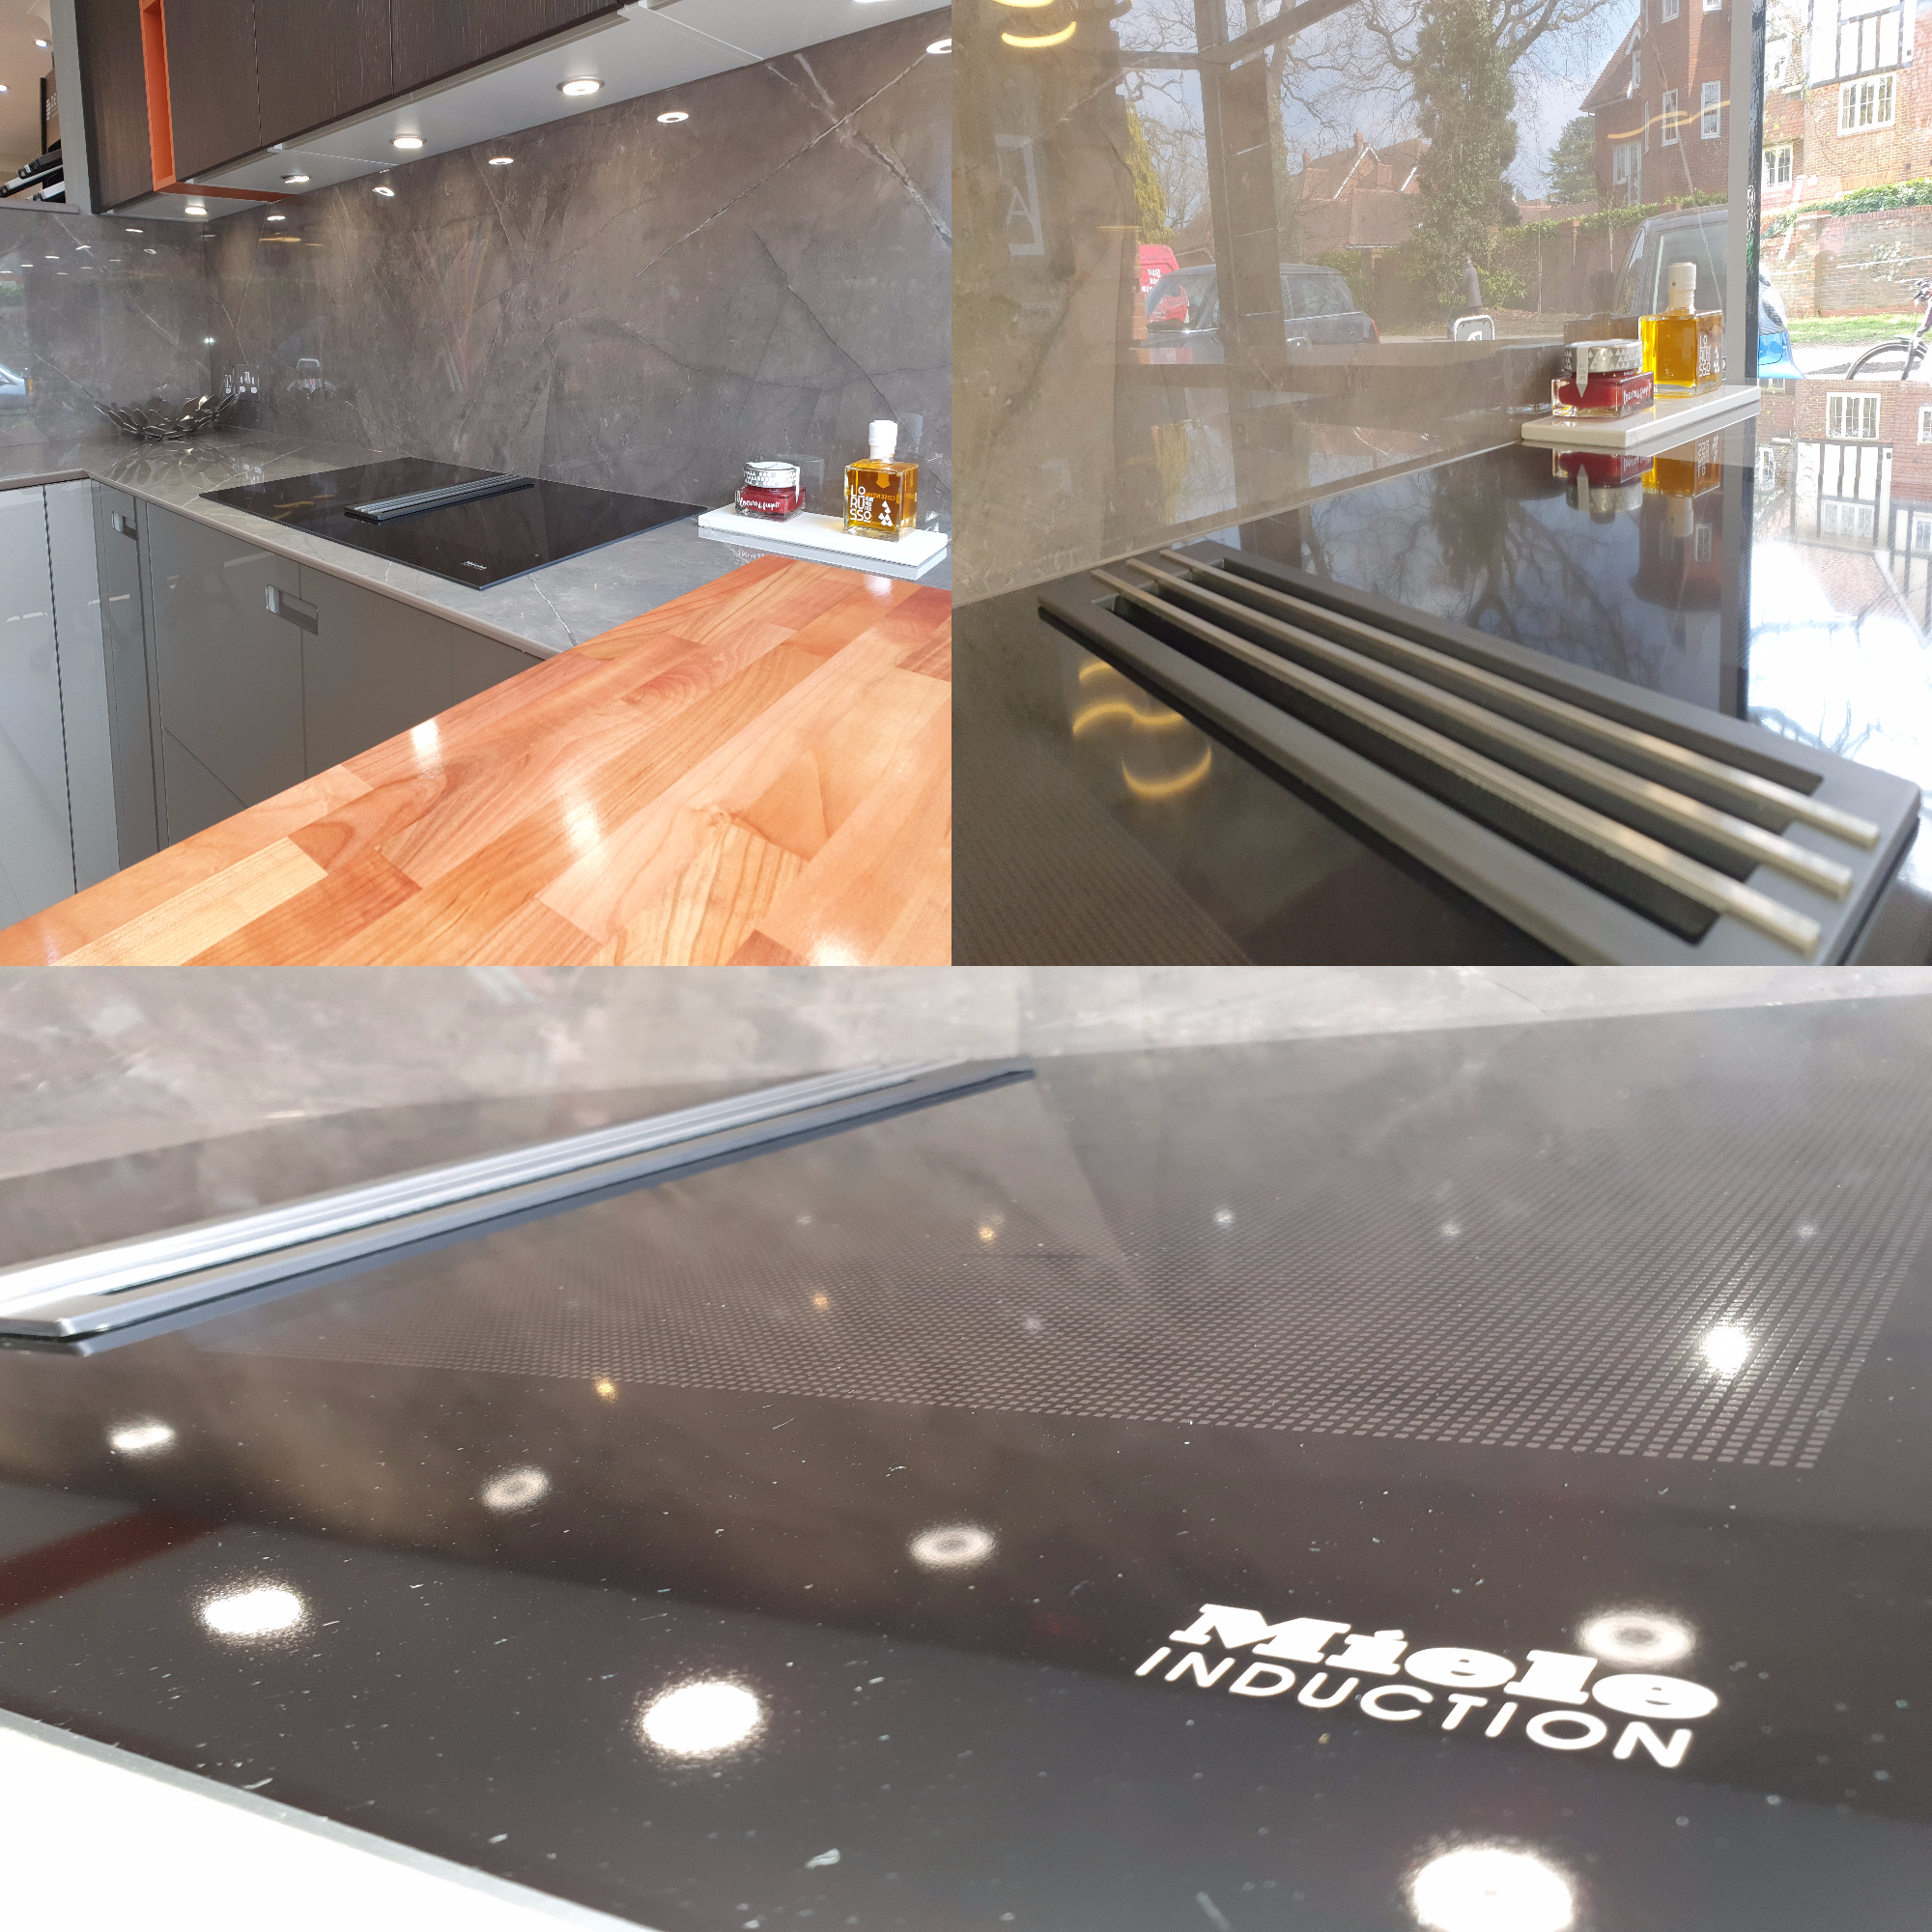 New Display Miele Induction Hob with Integrated Extractor Image